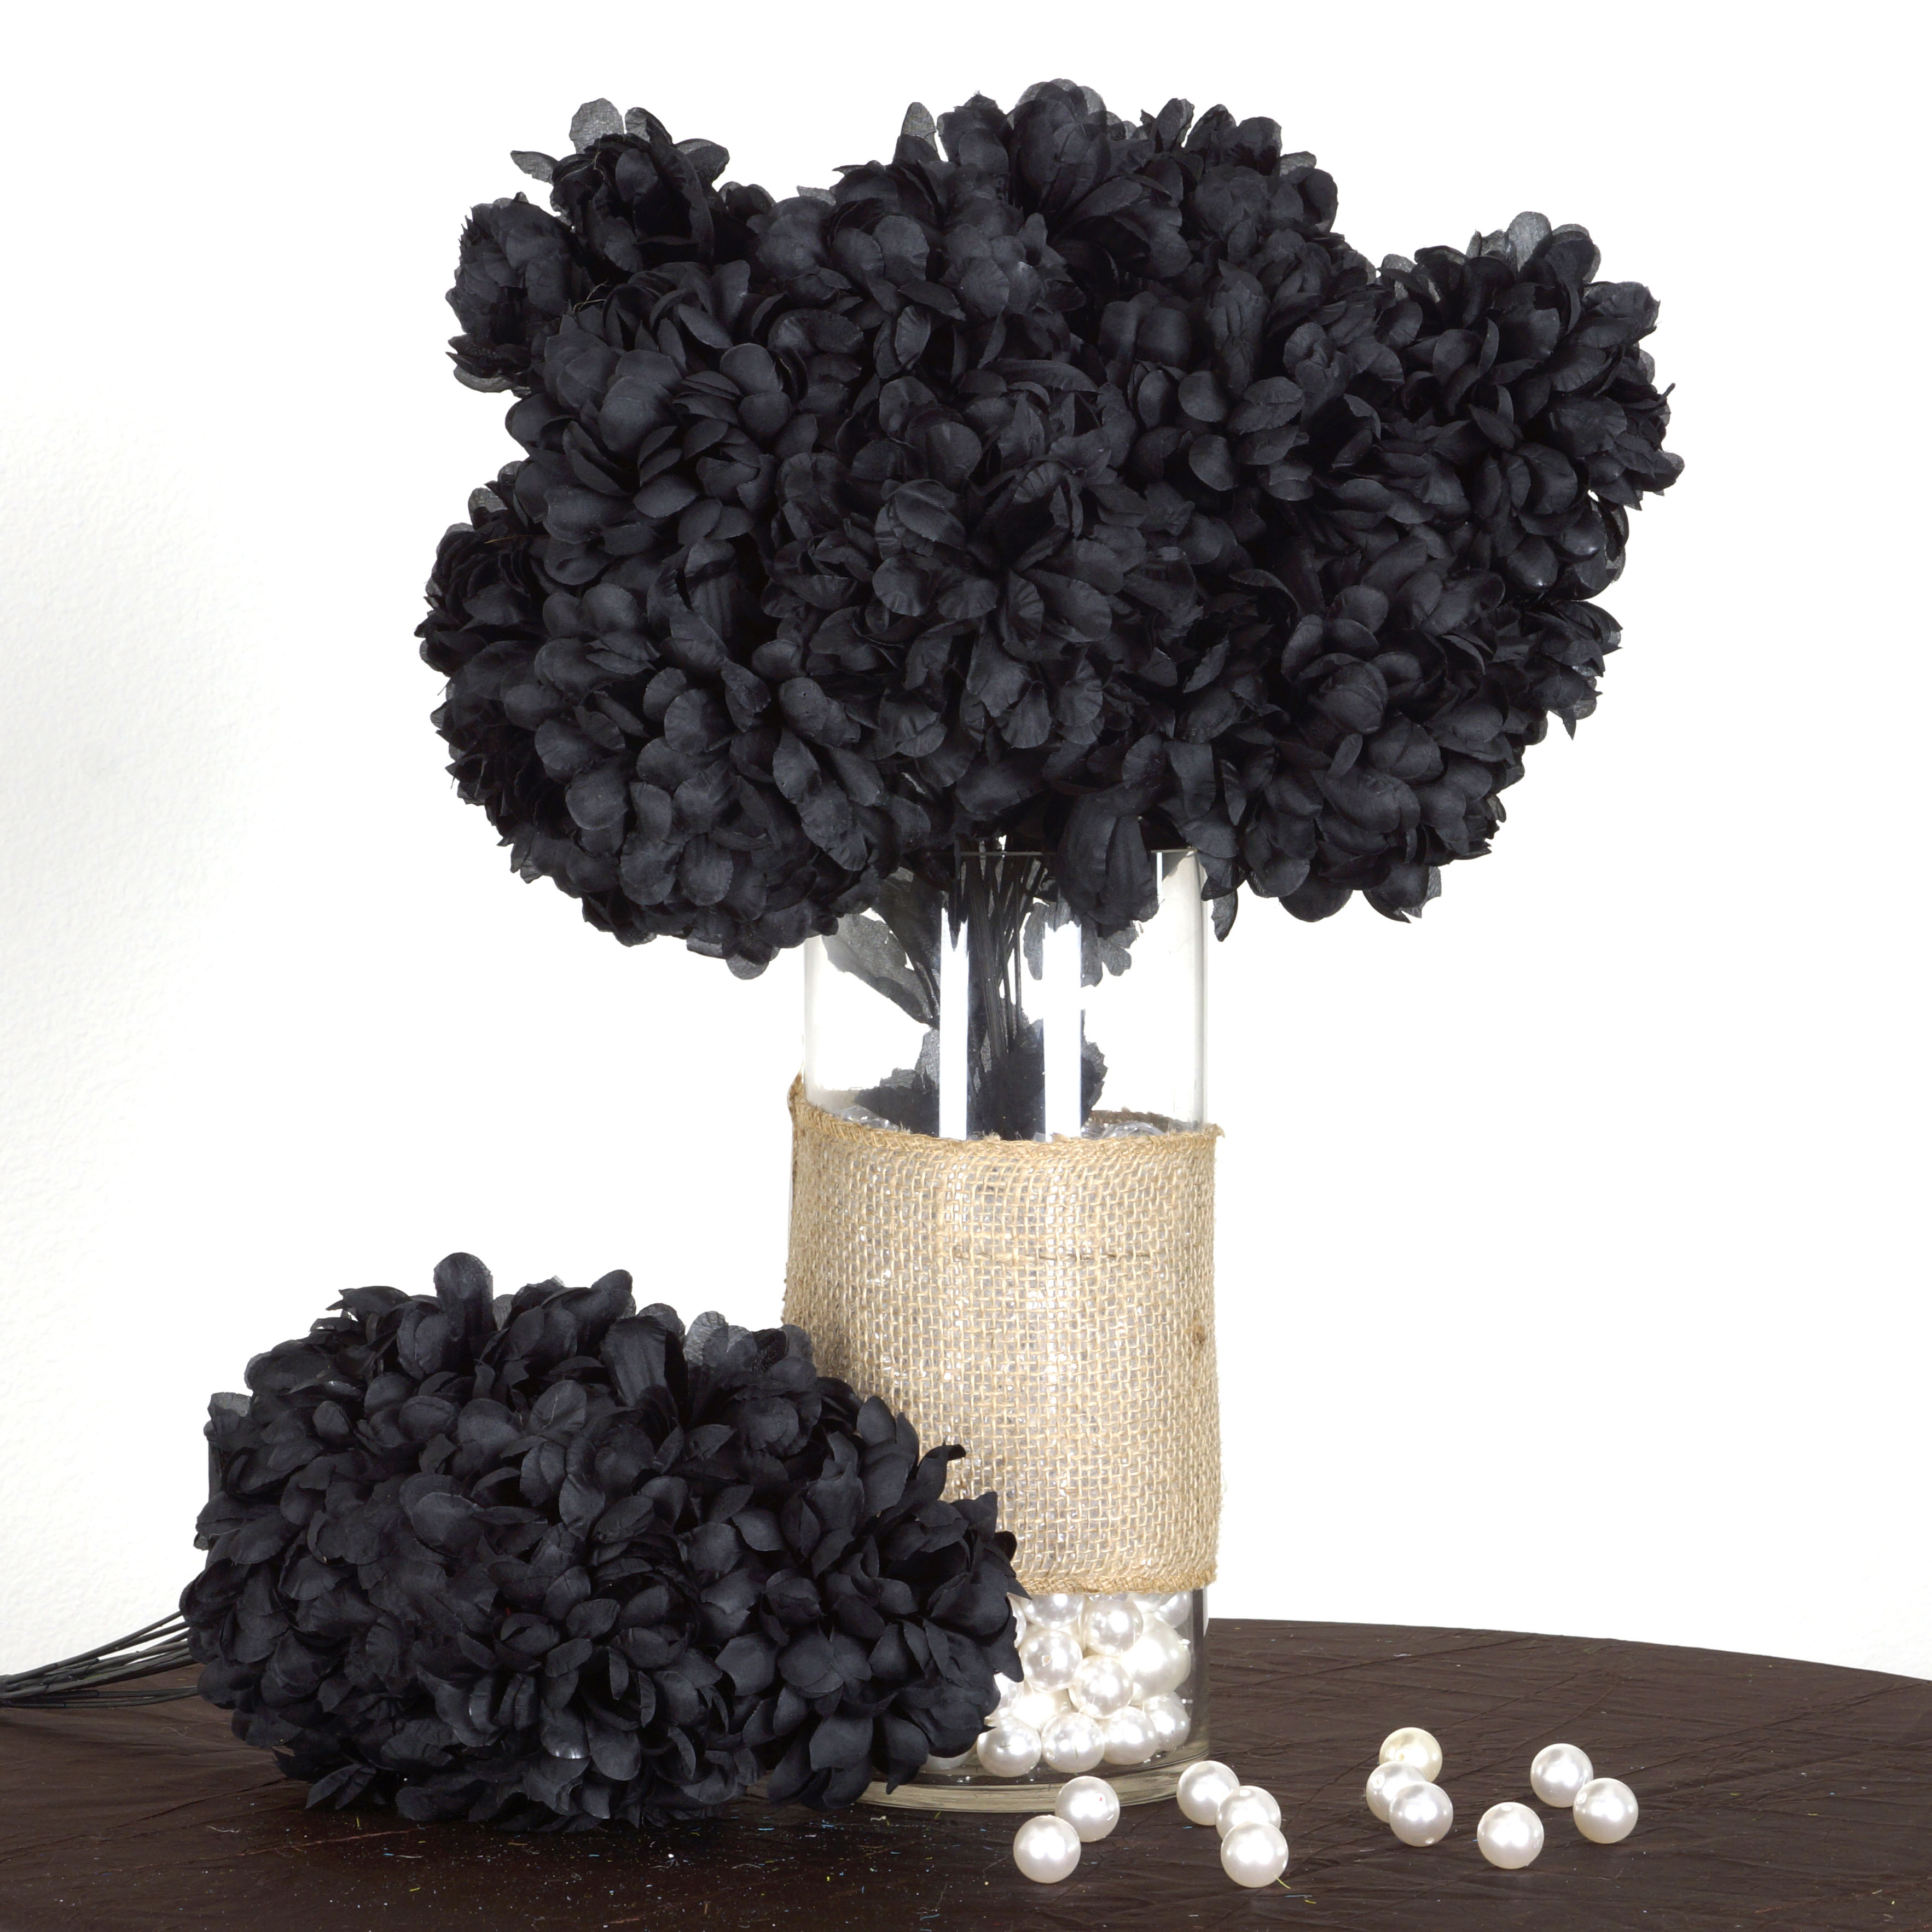 BalsaCircle 56 Large Chrysanthemum Mums Balls Silk Flowers - DIY Home Wedding Party Artificial Bouquets Arrangements Centerpieces